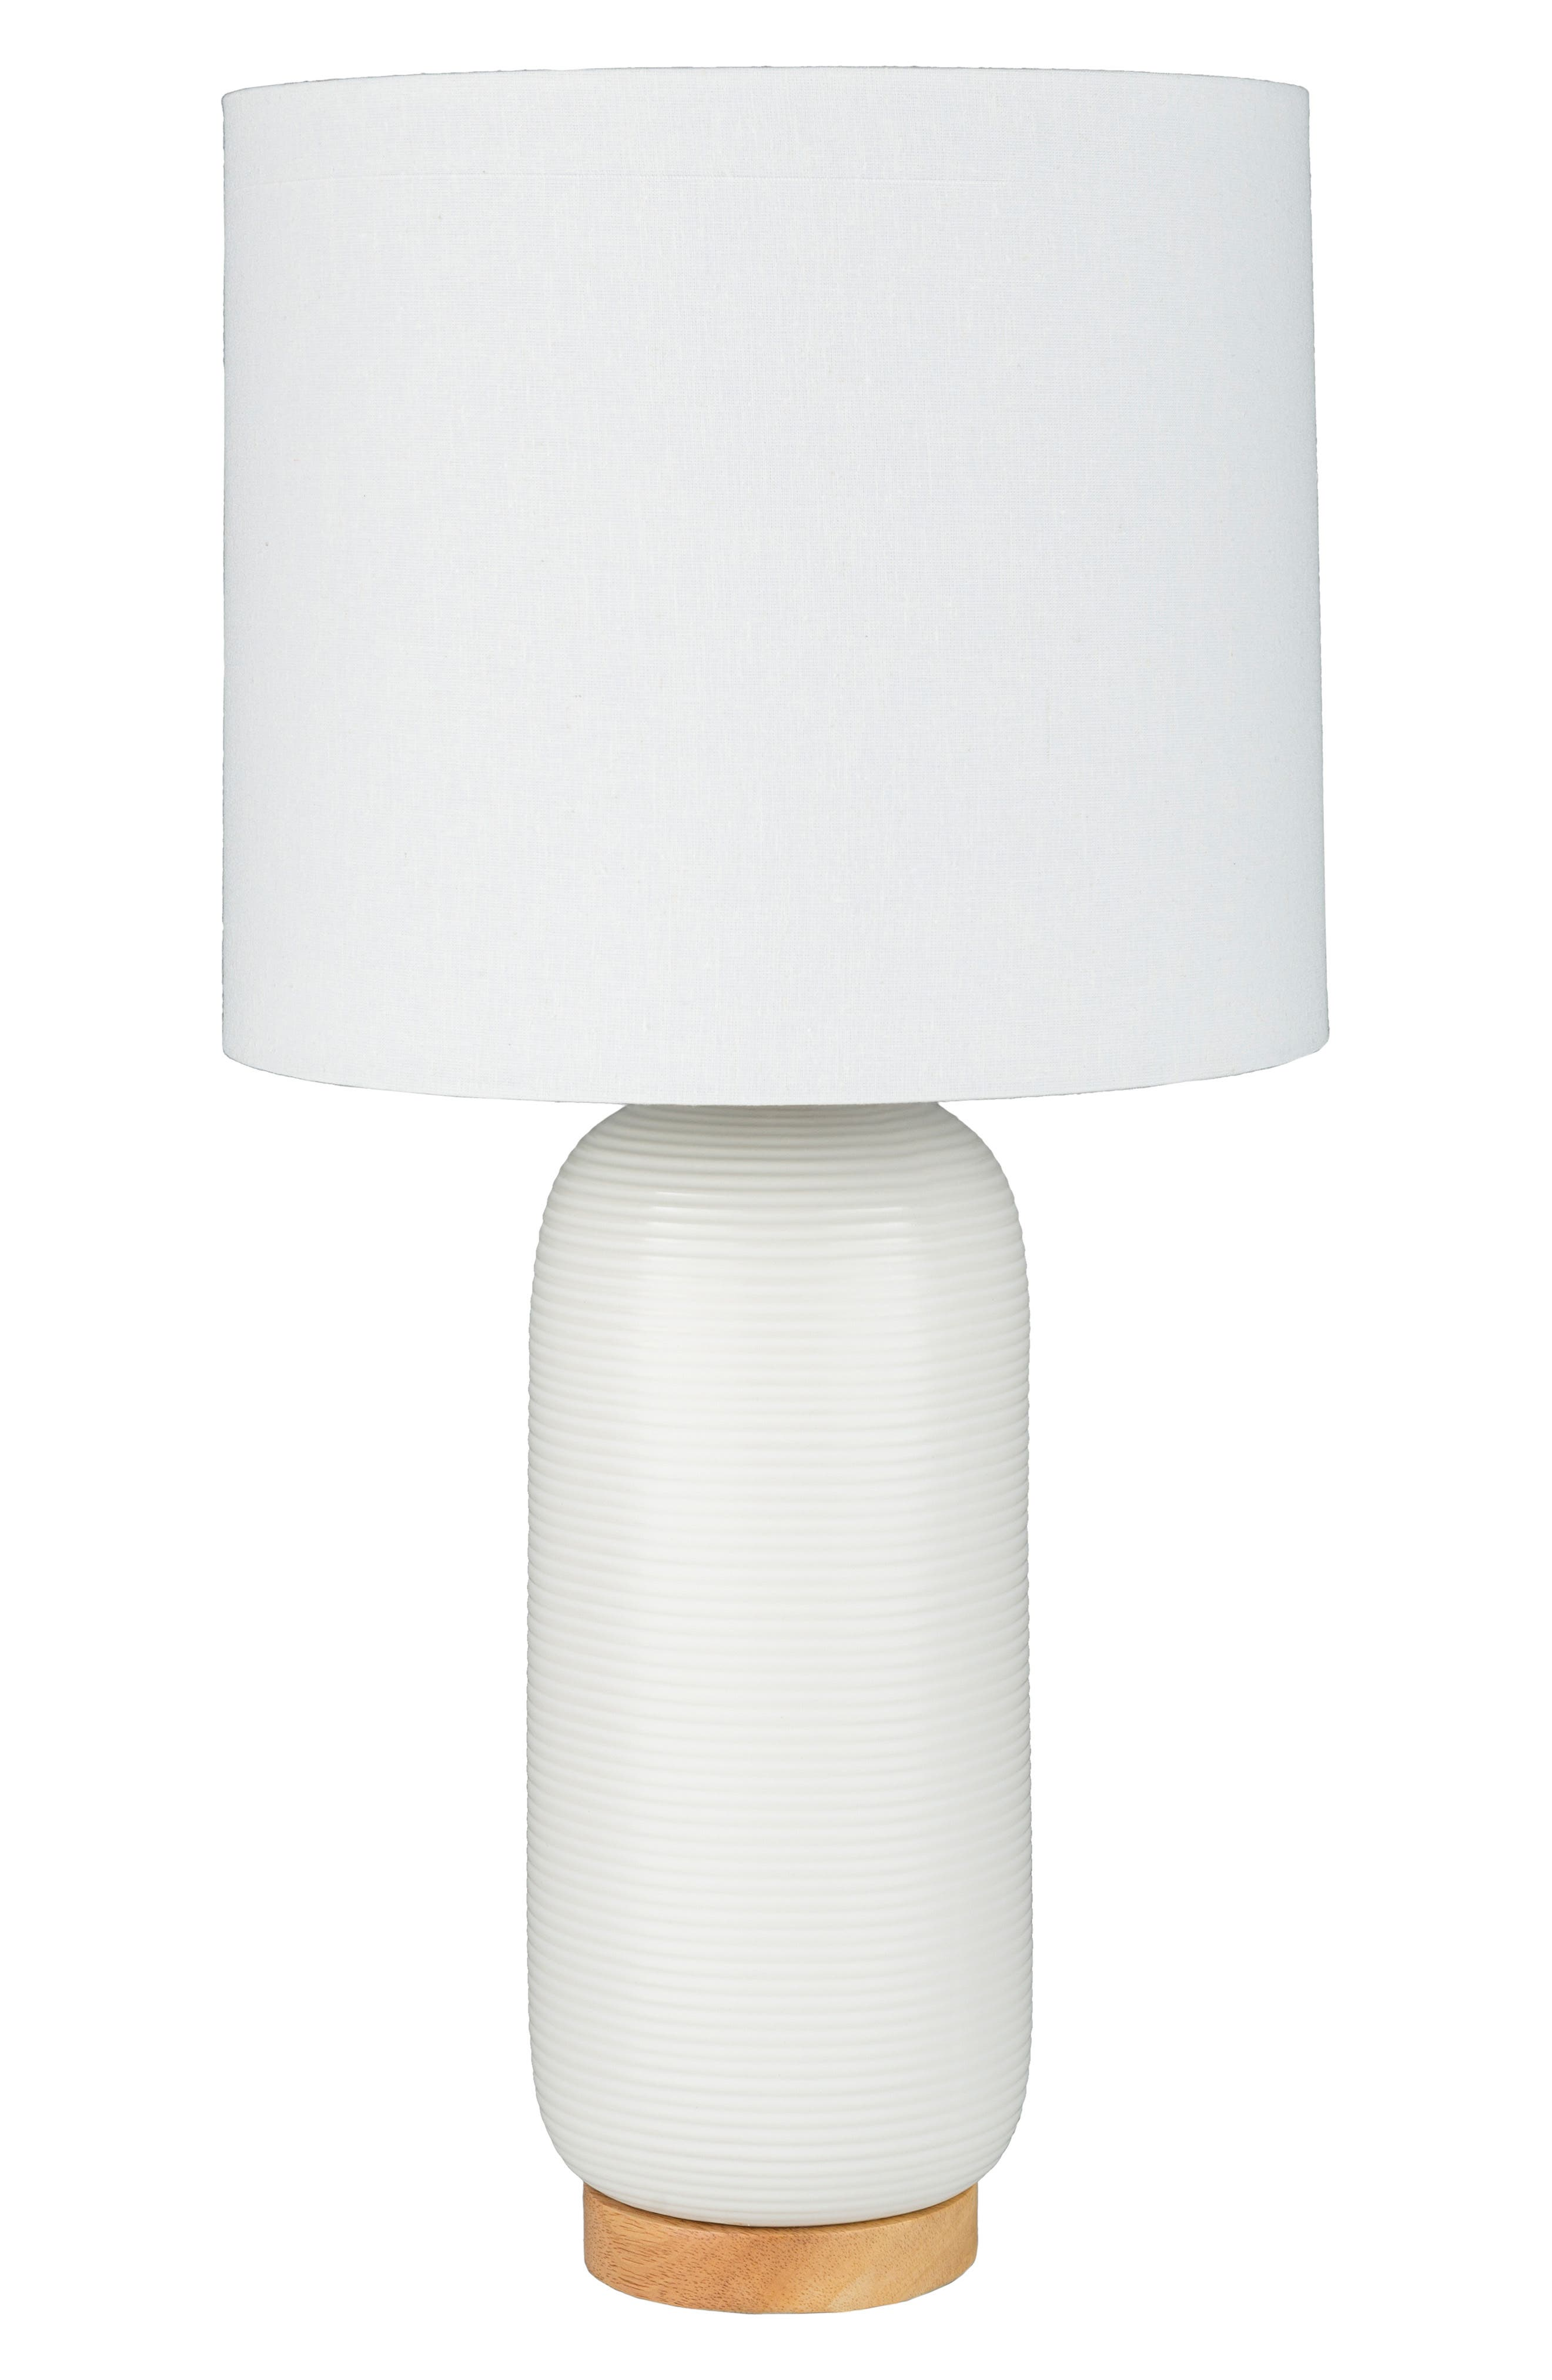 Surya Home Everly Table Lamp Size One Size  White